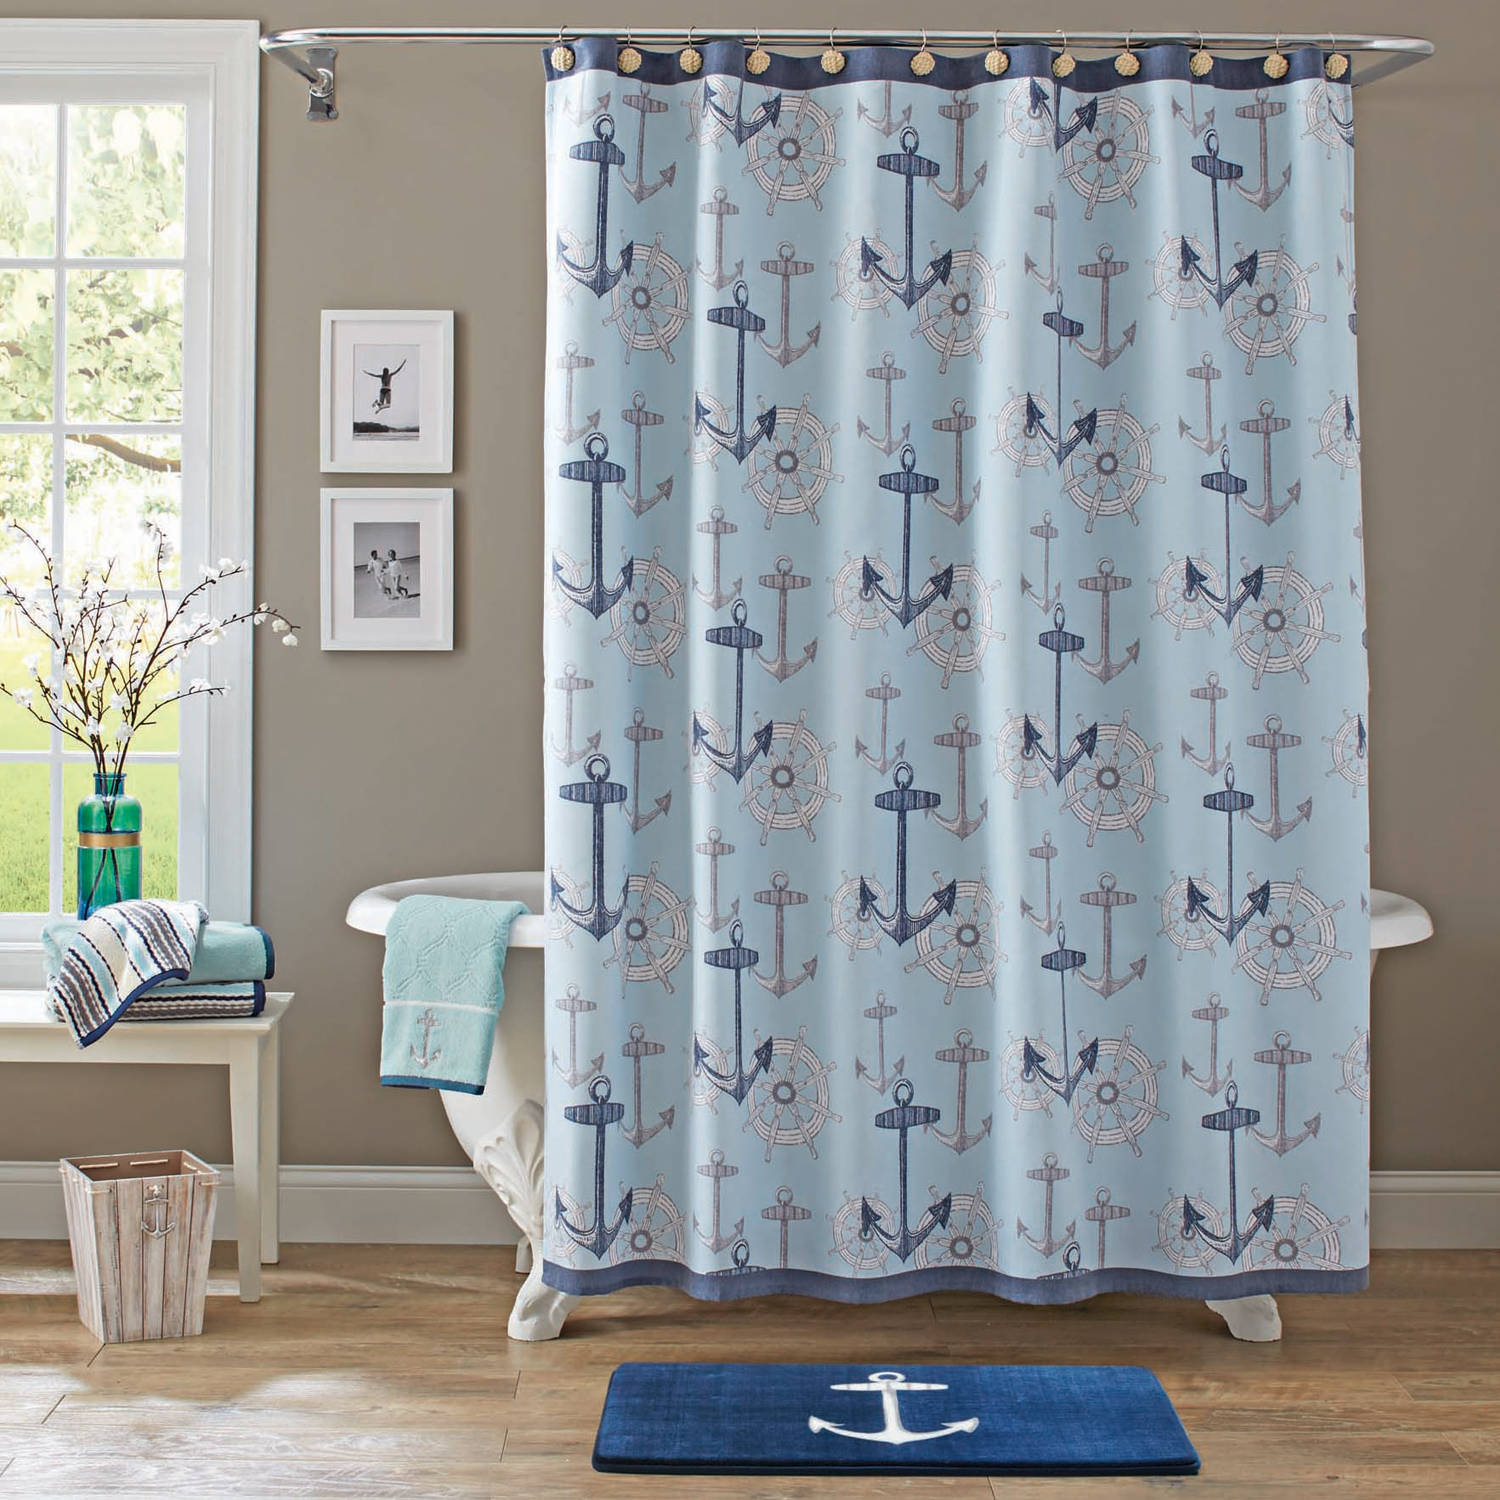 Better Homes And Gardens Nautical Shower Curtain Walmart For Dimensions  1500 X 1500